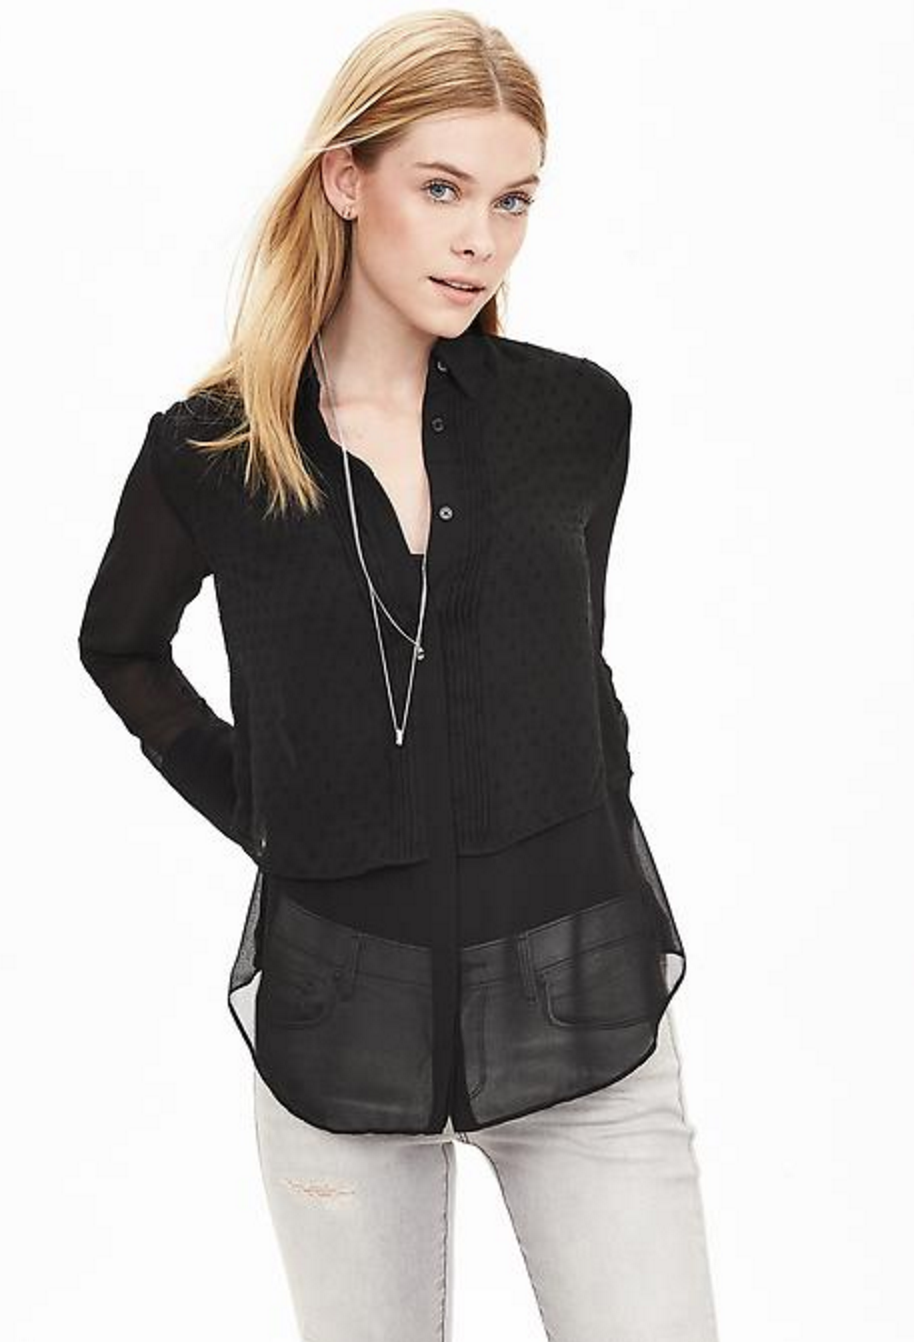 My Superficial Endeavors: Tops from Banana Republic and Nordstrom